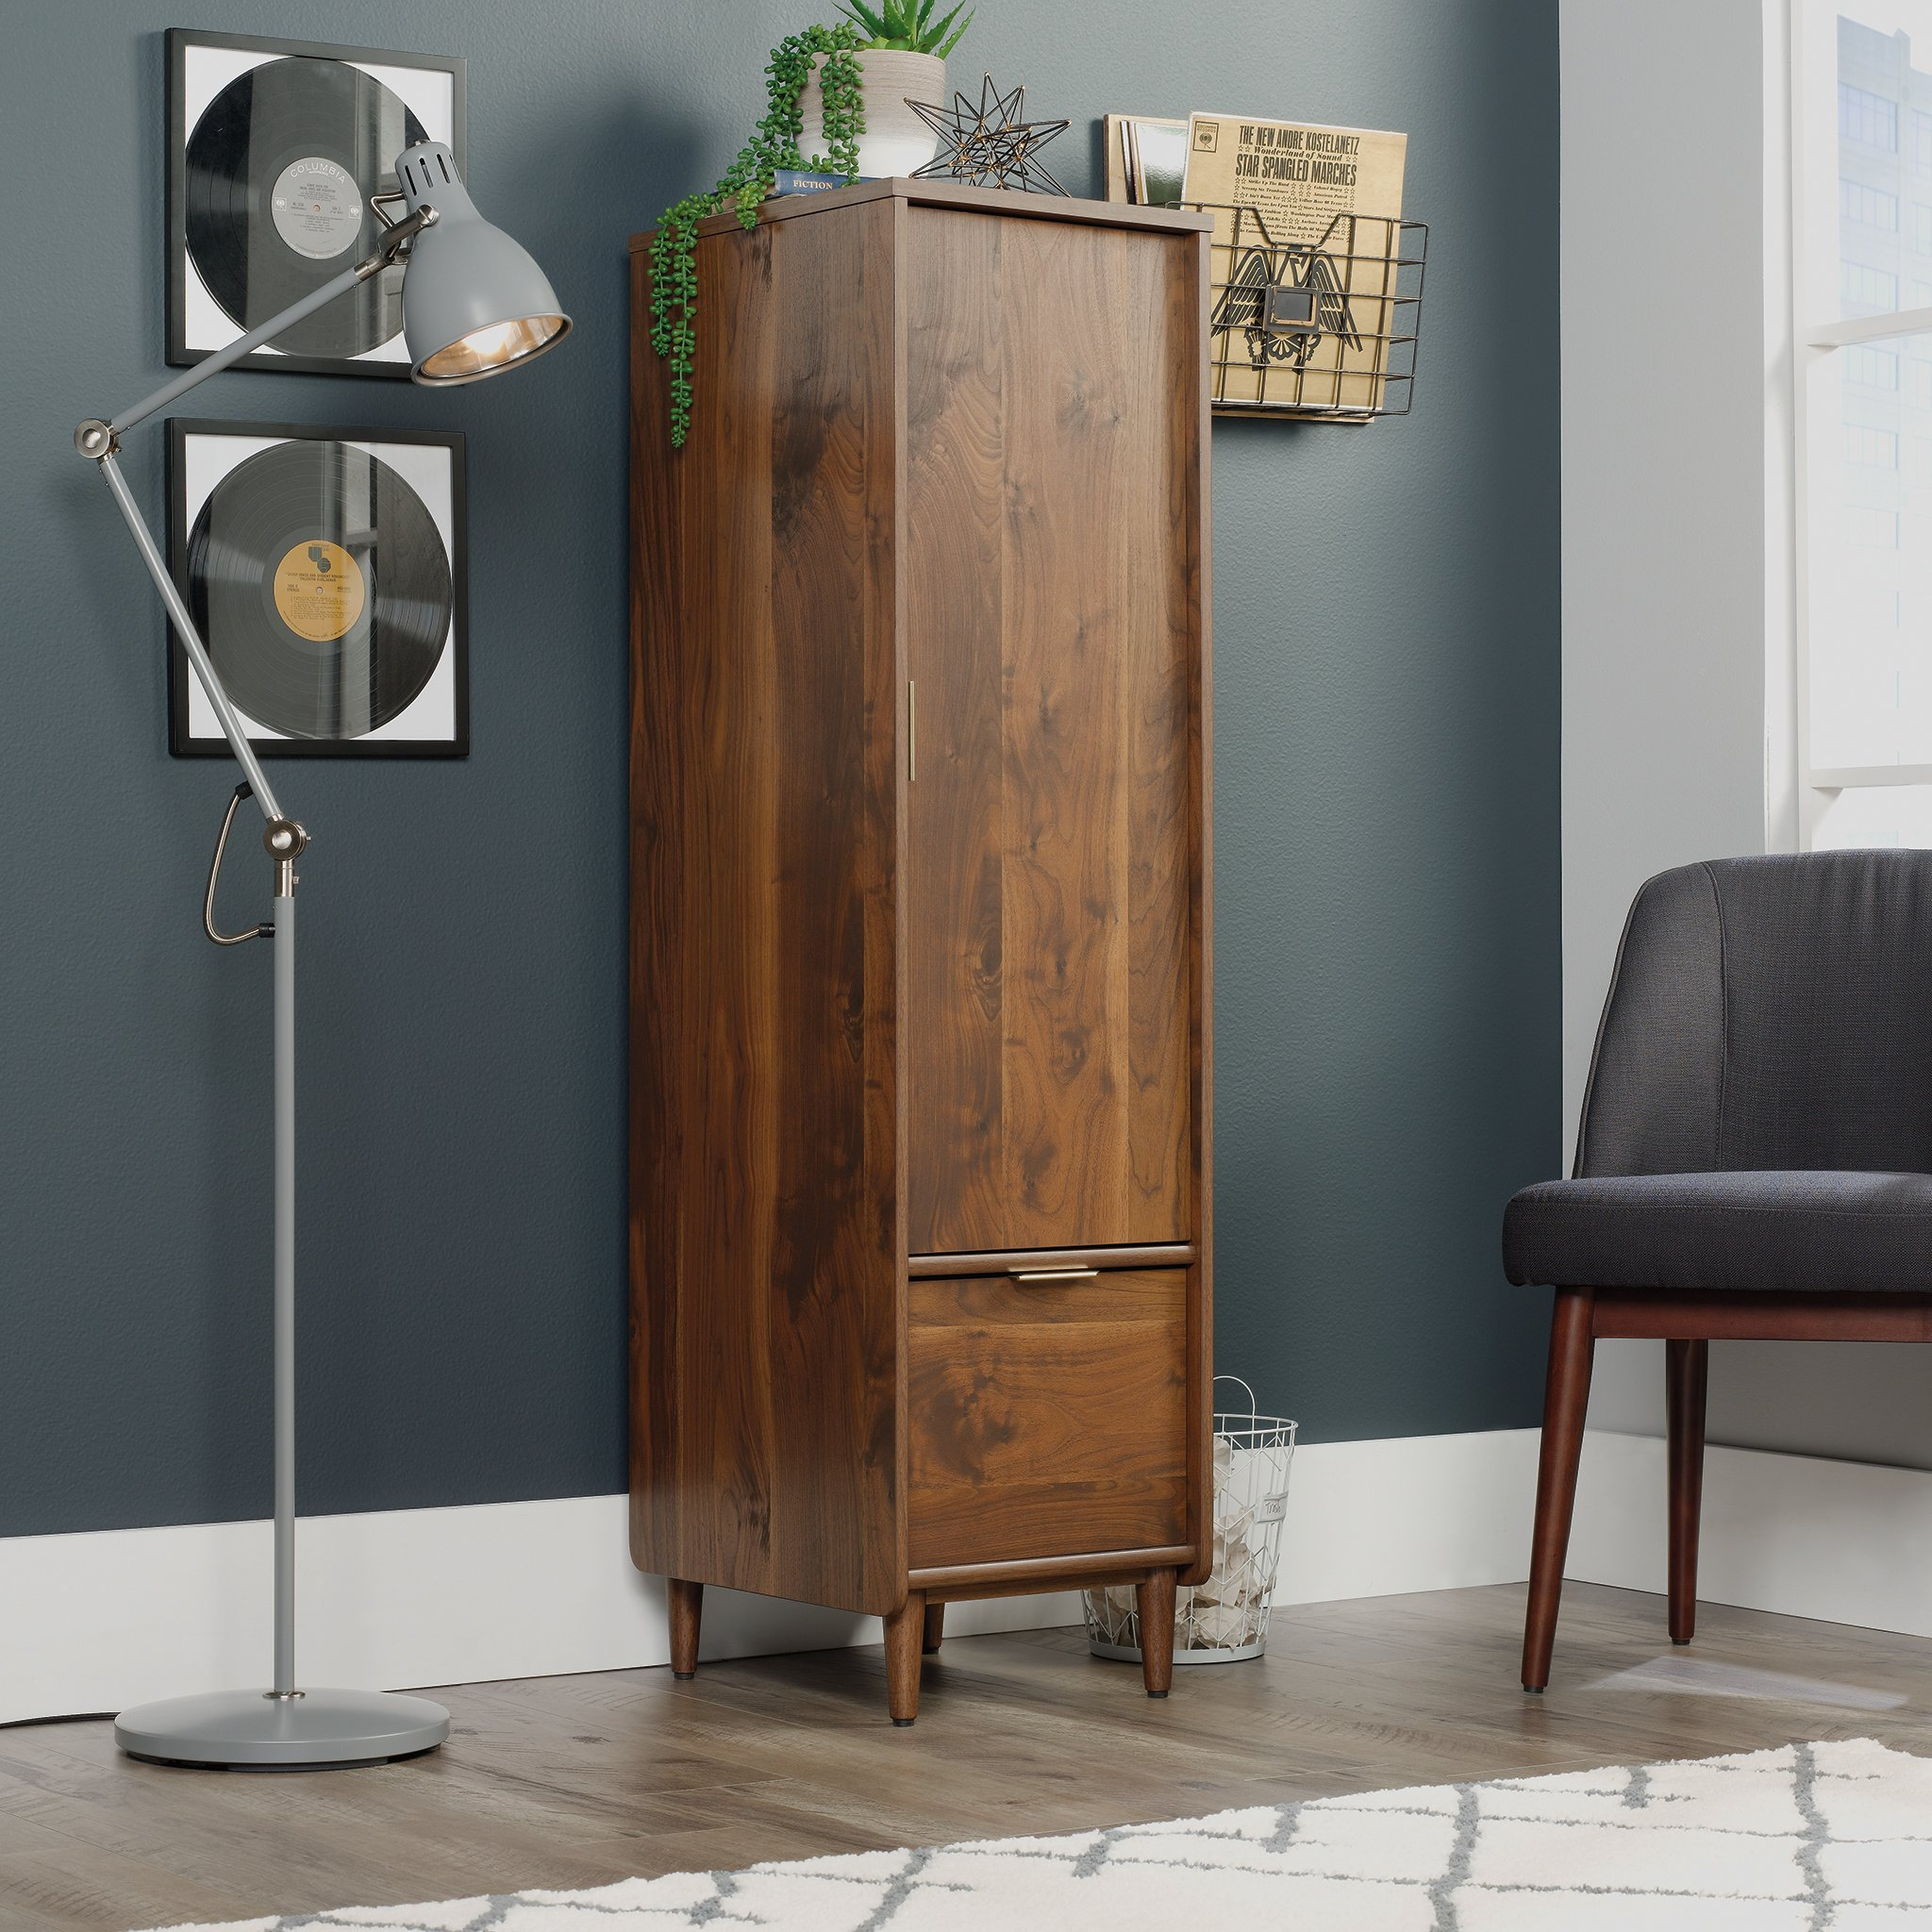 Sauder 421318 Clifford Place Storage Cabinet with File, L: 15.51'' x W: 18.50'' x H: 58.27'', Grand Walnut Finish by Sauder (Image #2)